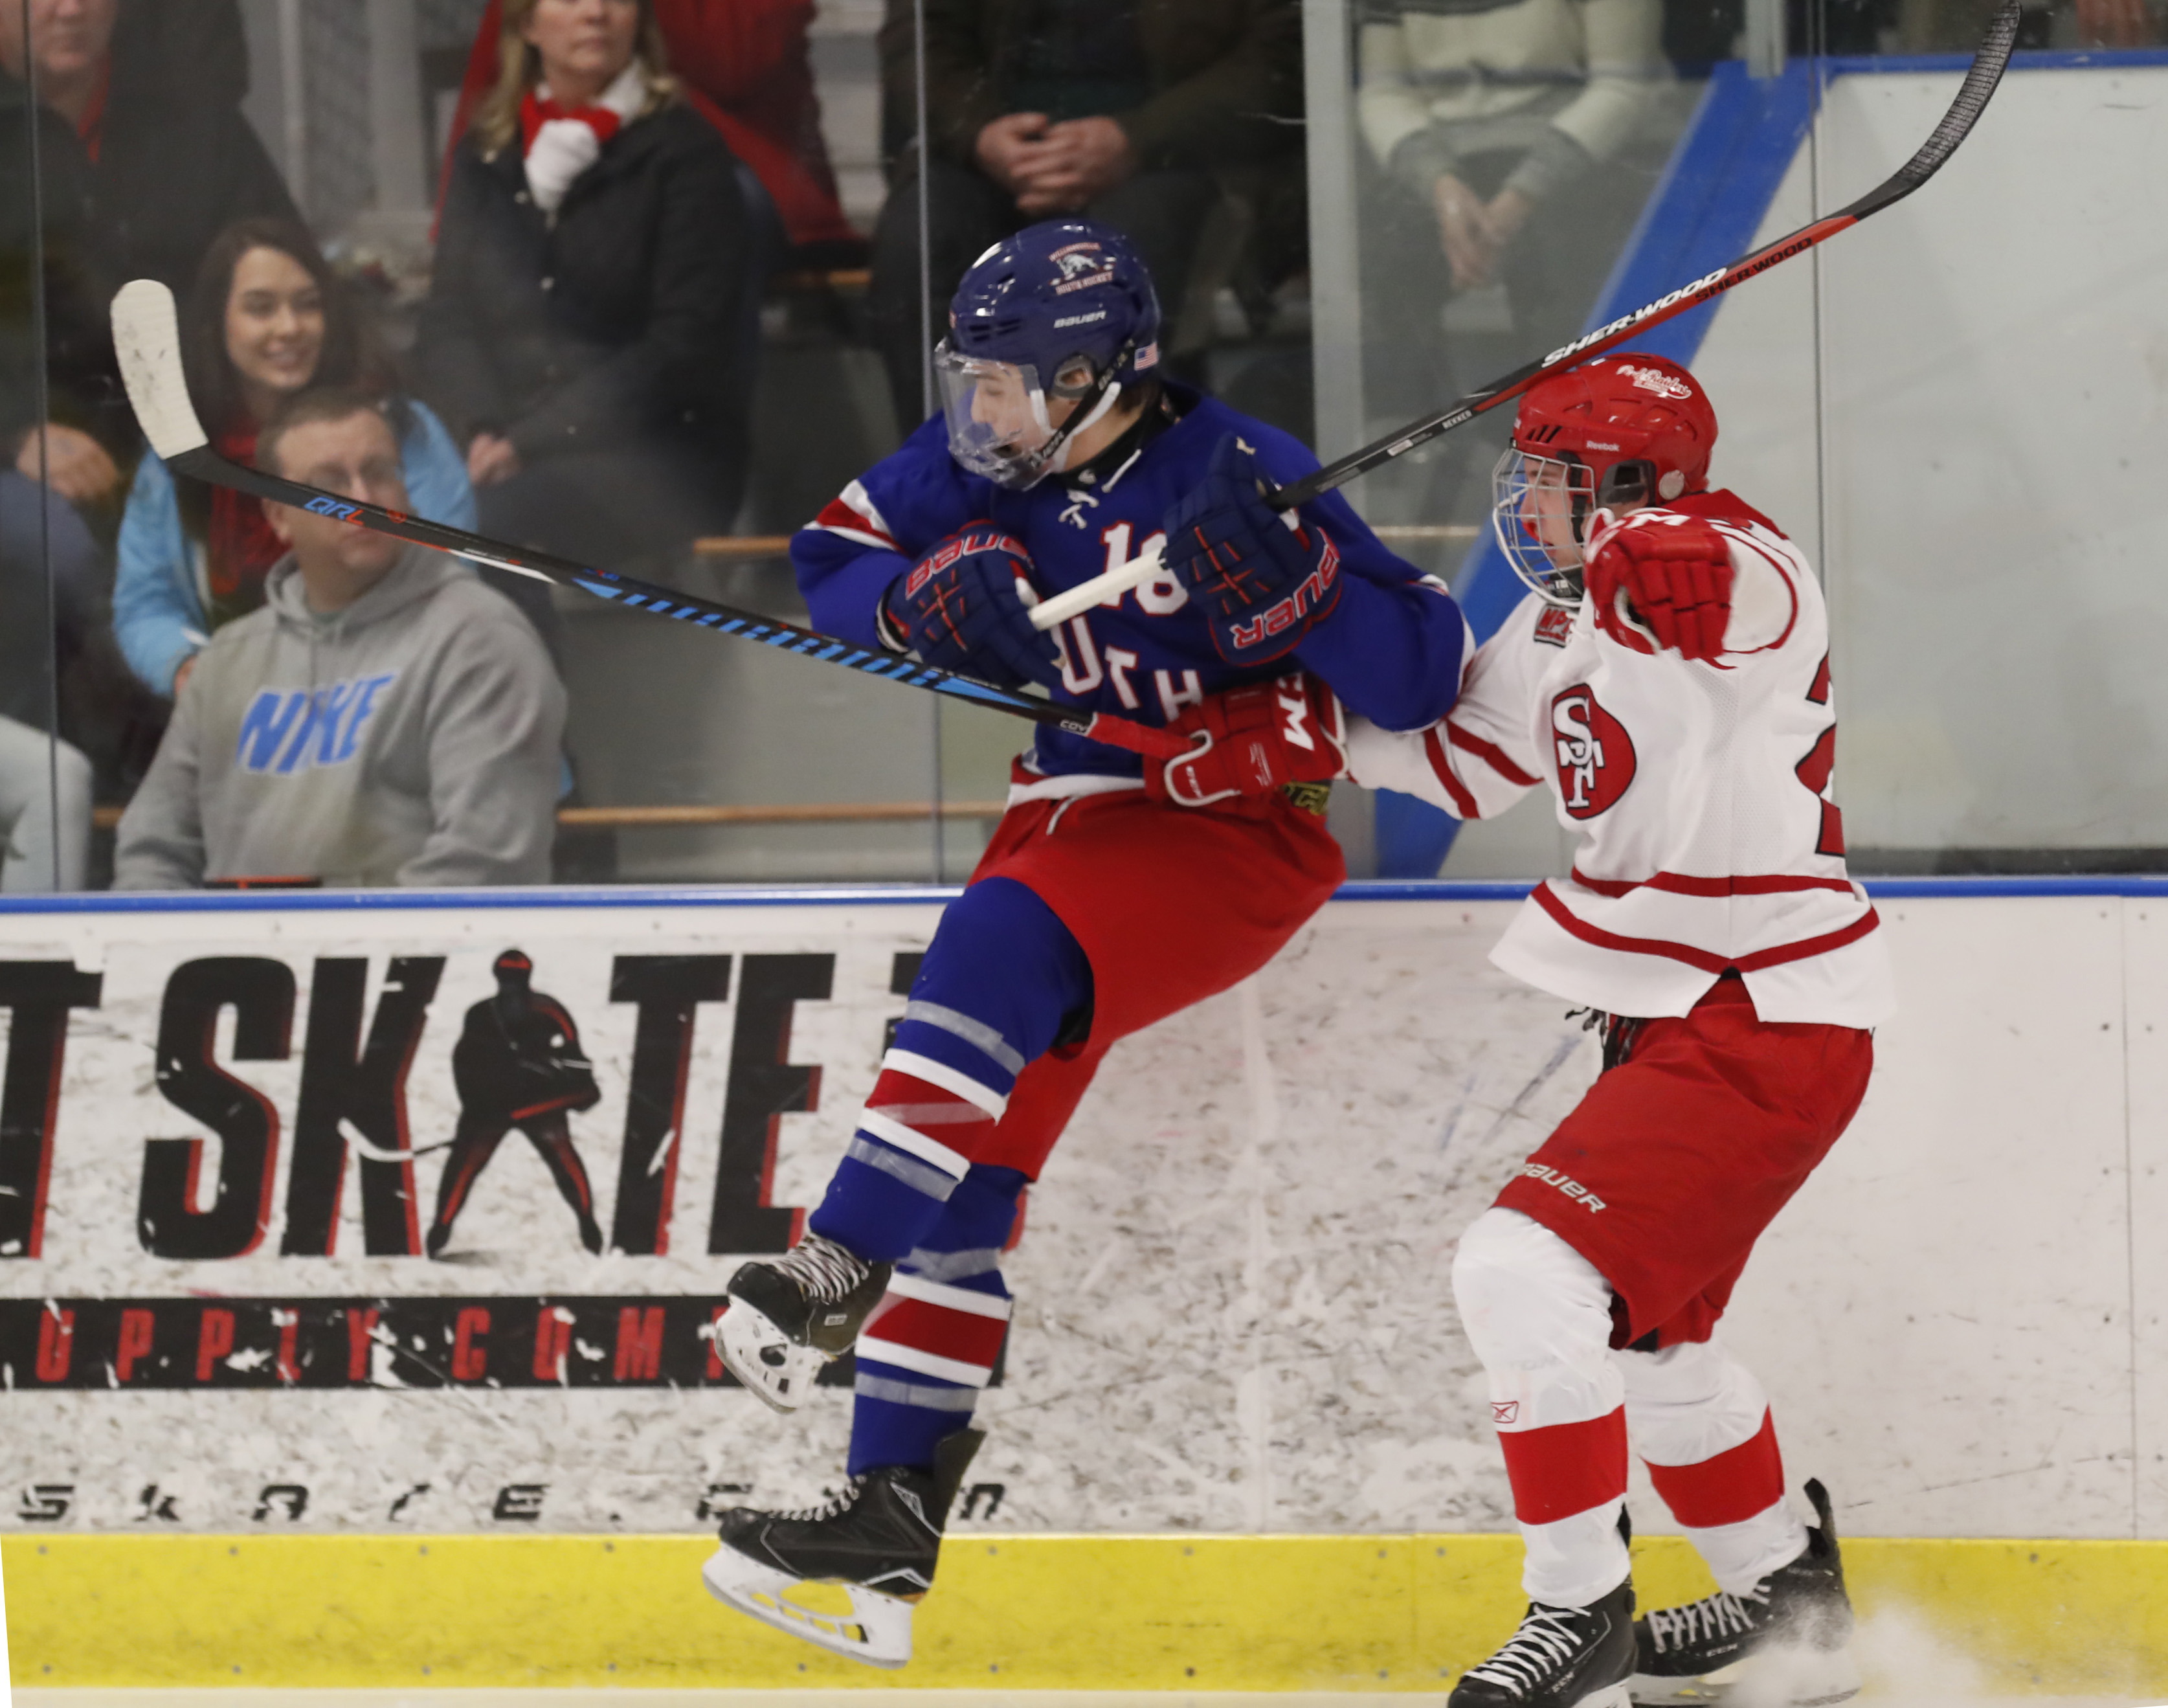 St. Francis' Domonic Galanti checks Williamsville South's Amthony Lazarony during first period action at the Northtown Center on Saturday, Feb. 11, 2017. (Harry Scull Jr./Buffalo News)